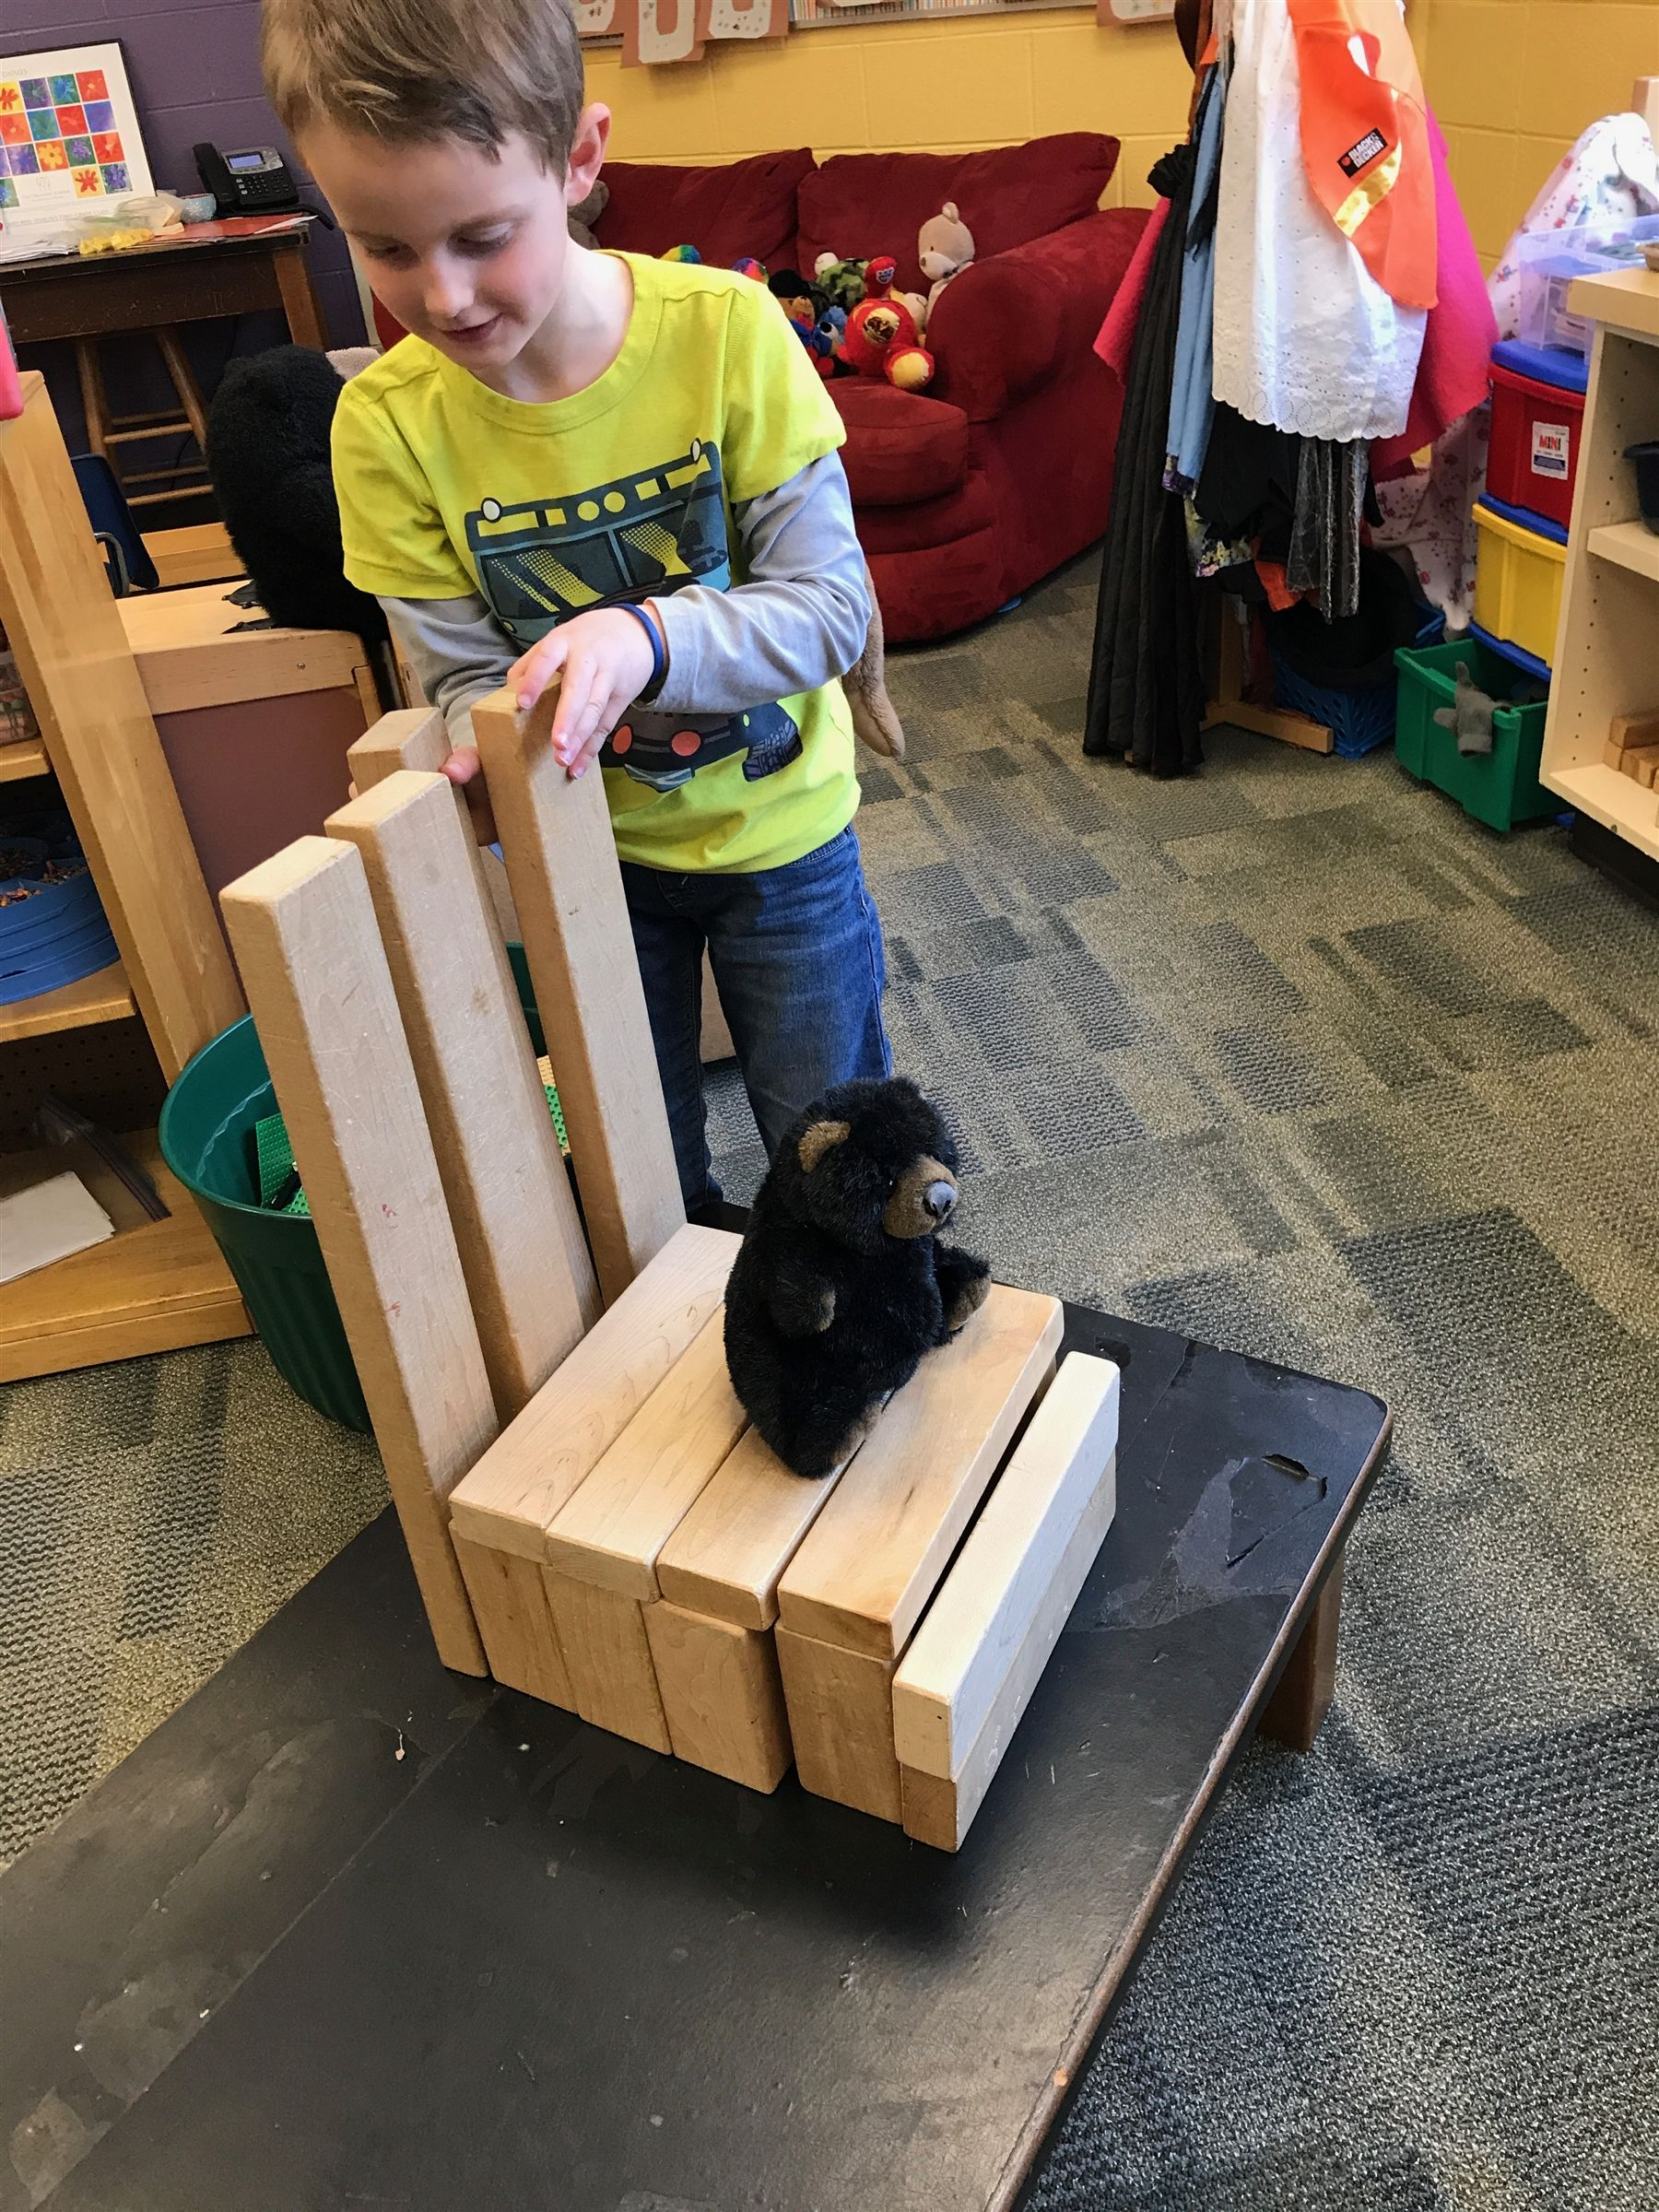 To go along with the fairy tale Goldilocks, each child brought in their own bear. We integrated the story into our STEM lessons by measuring our bears with non standard measurement and tasking the children to build a chair just right for their bear.